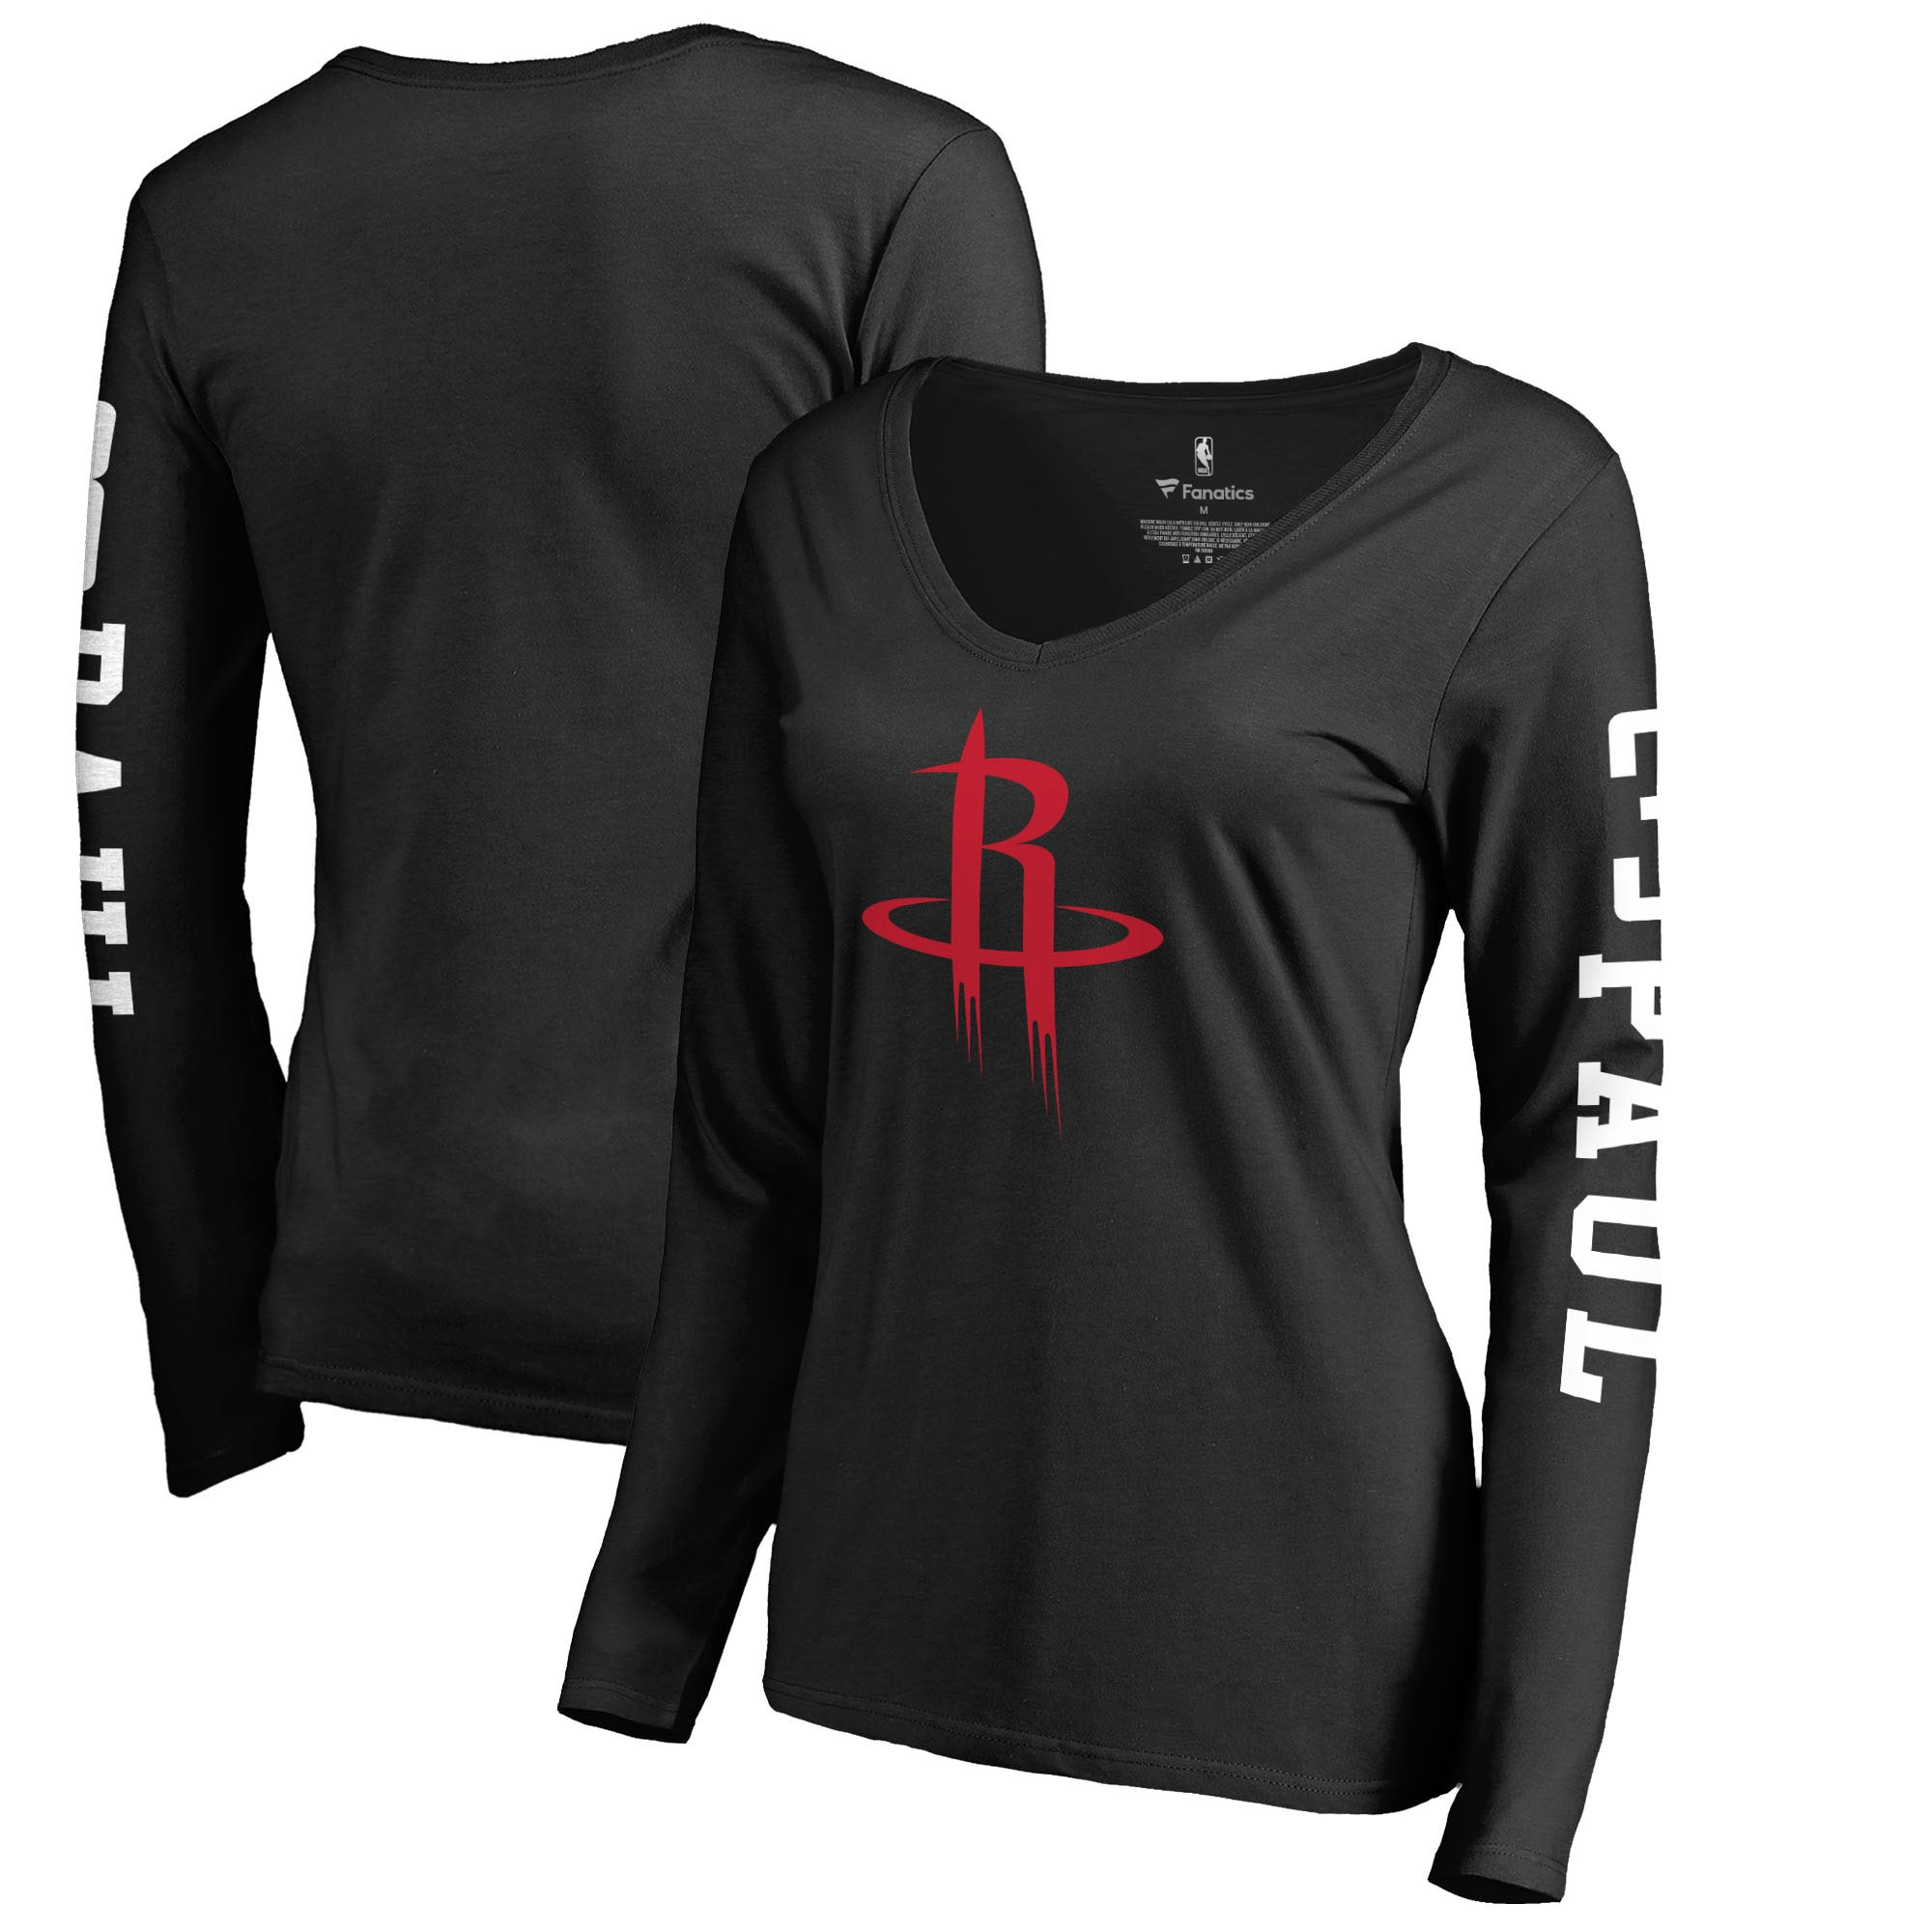 Chris Paul Houston Rockets Fanatics Branded Women's Team Idol Name & Number Long Sleeve V-Neck T-Shirt - Black